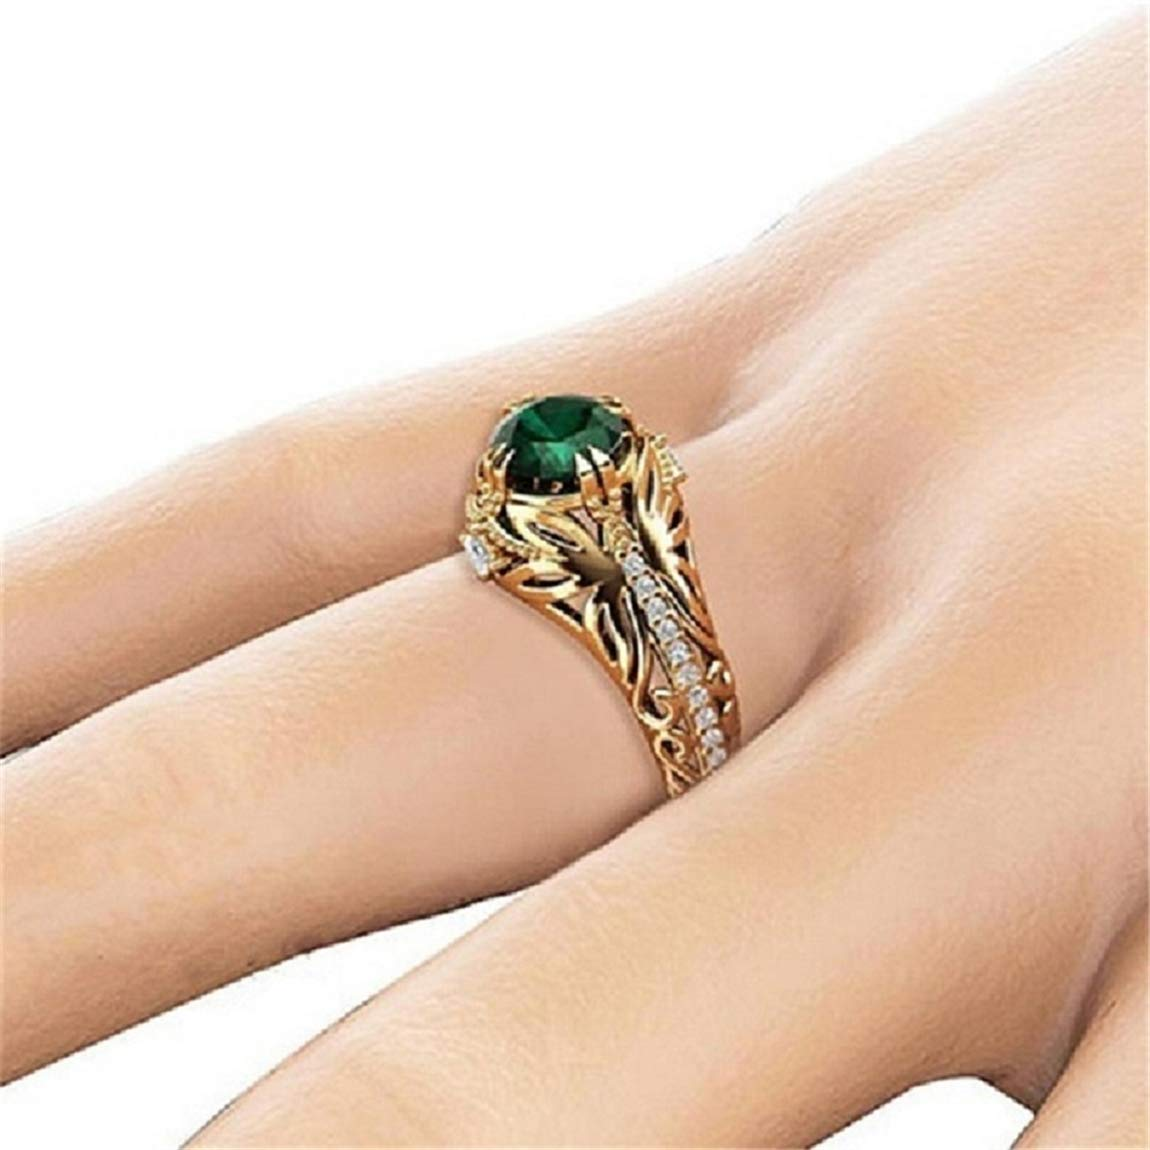 Weiy Fashionable Graceful Emerald Crystal Ring Gorgeous Charming Elegant Trendy Wedding Anniversary Engagement Ring Jewelry Accessories Gift for Women Girls